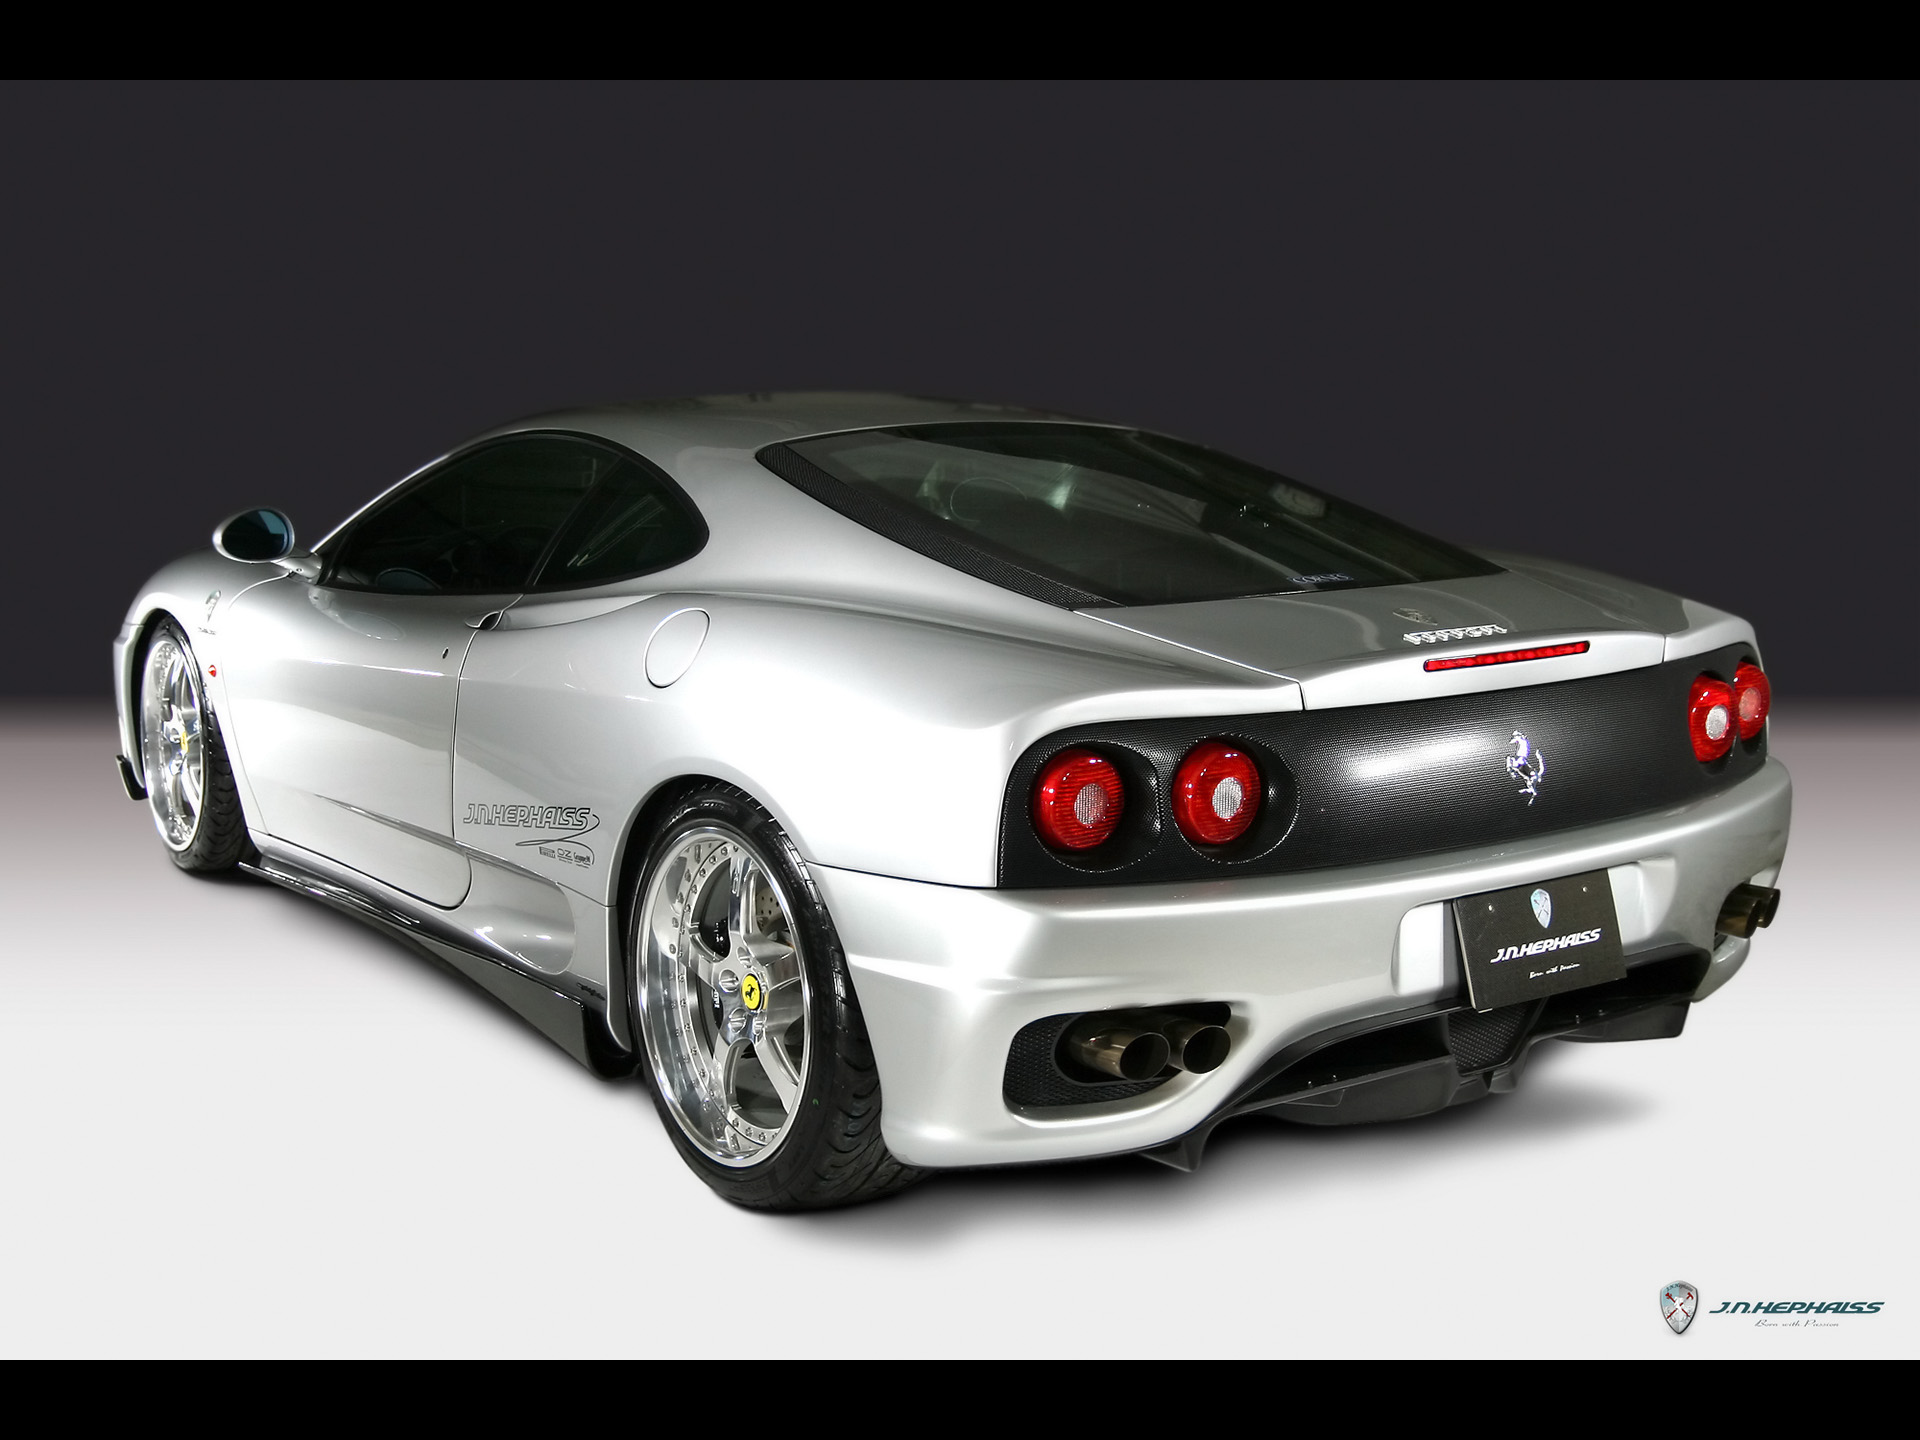 JNH Ferrari 360 Modena photo 44253